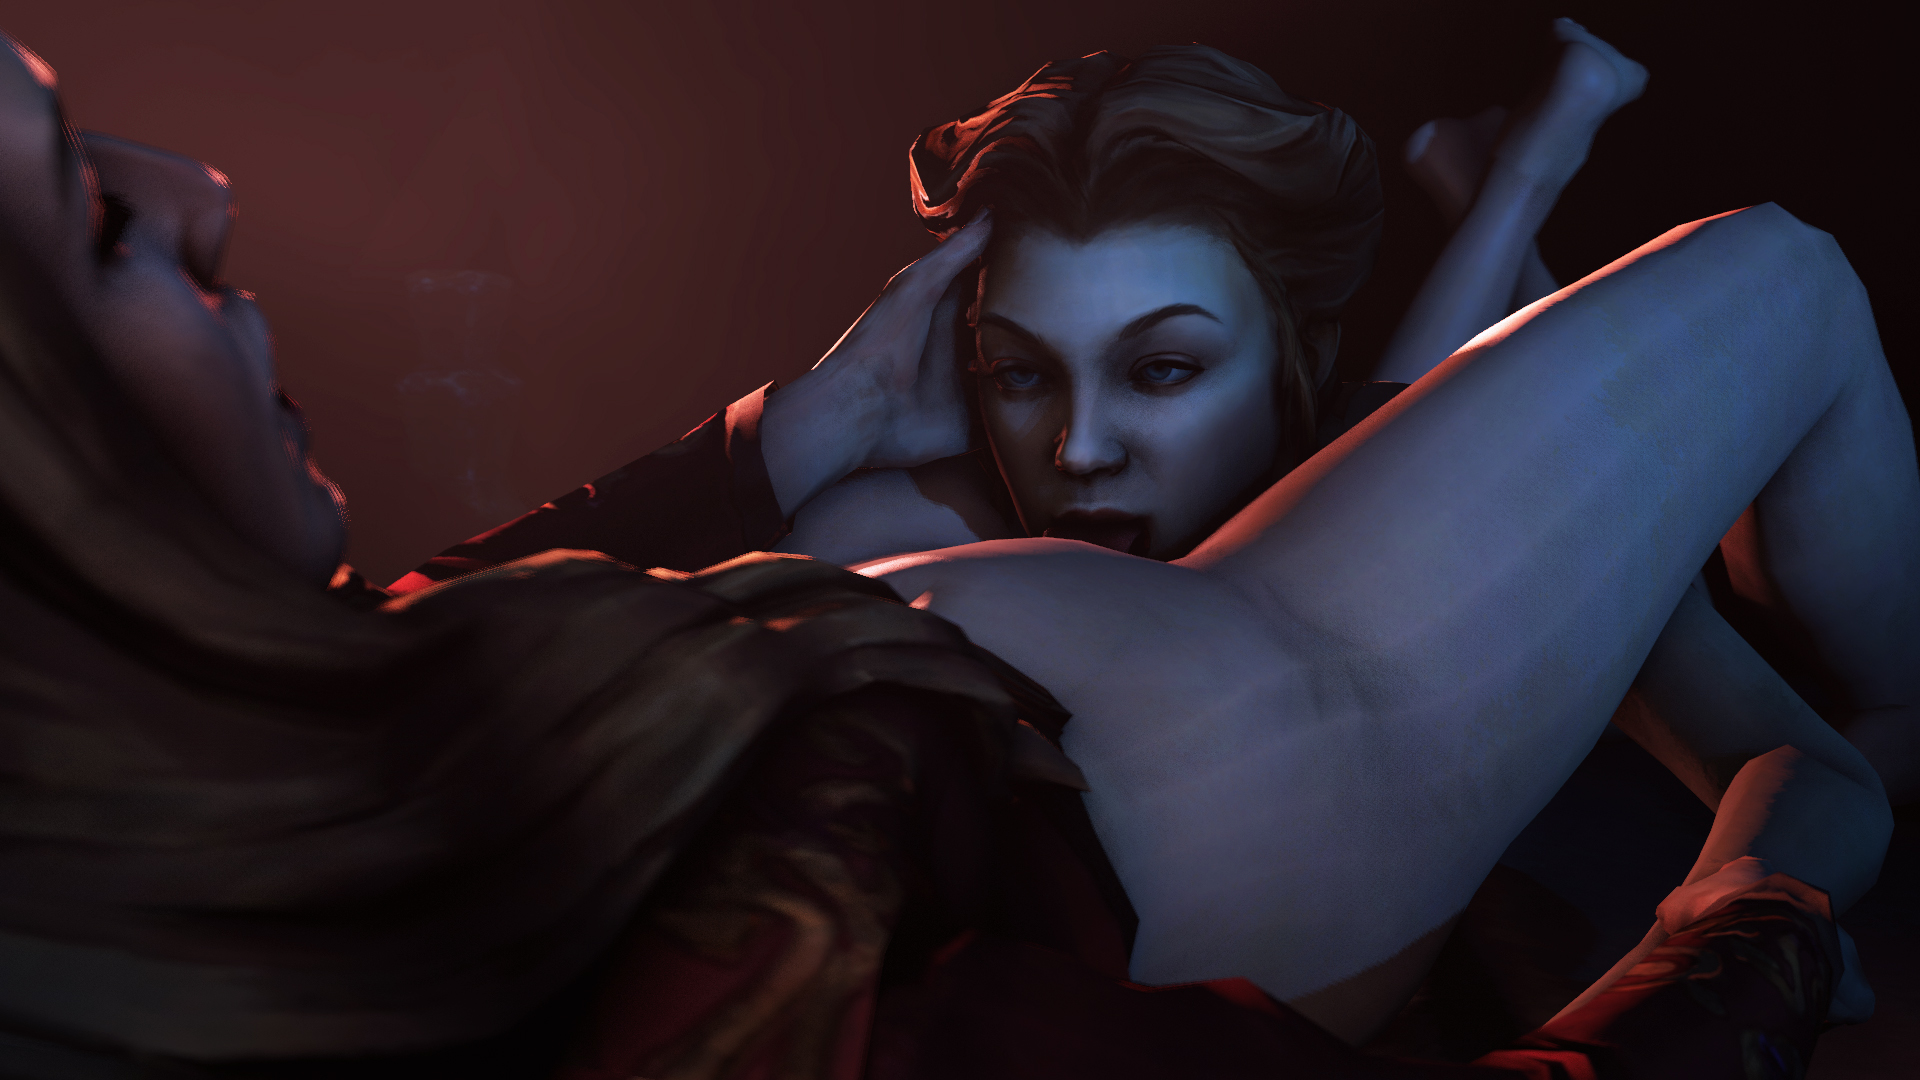 Frozen throne characters nude wallpapers fucks photo